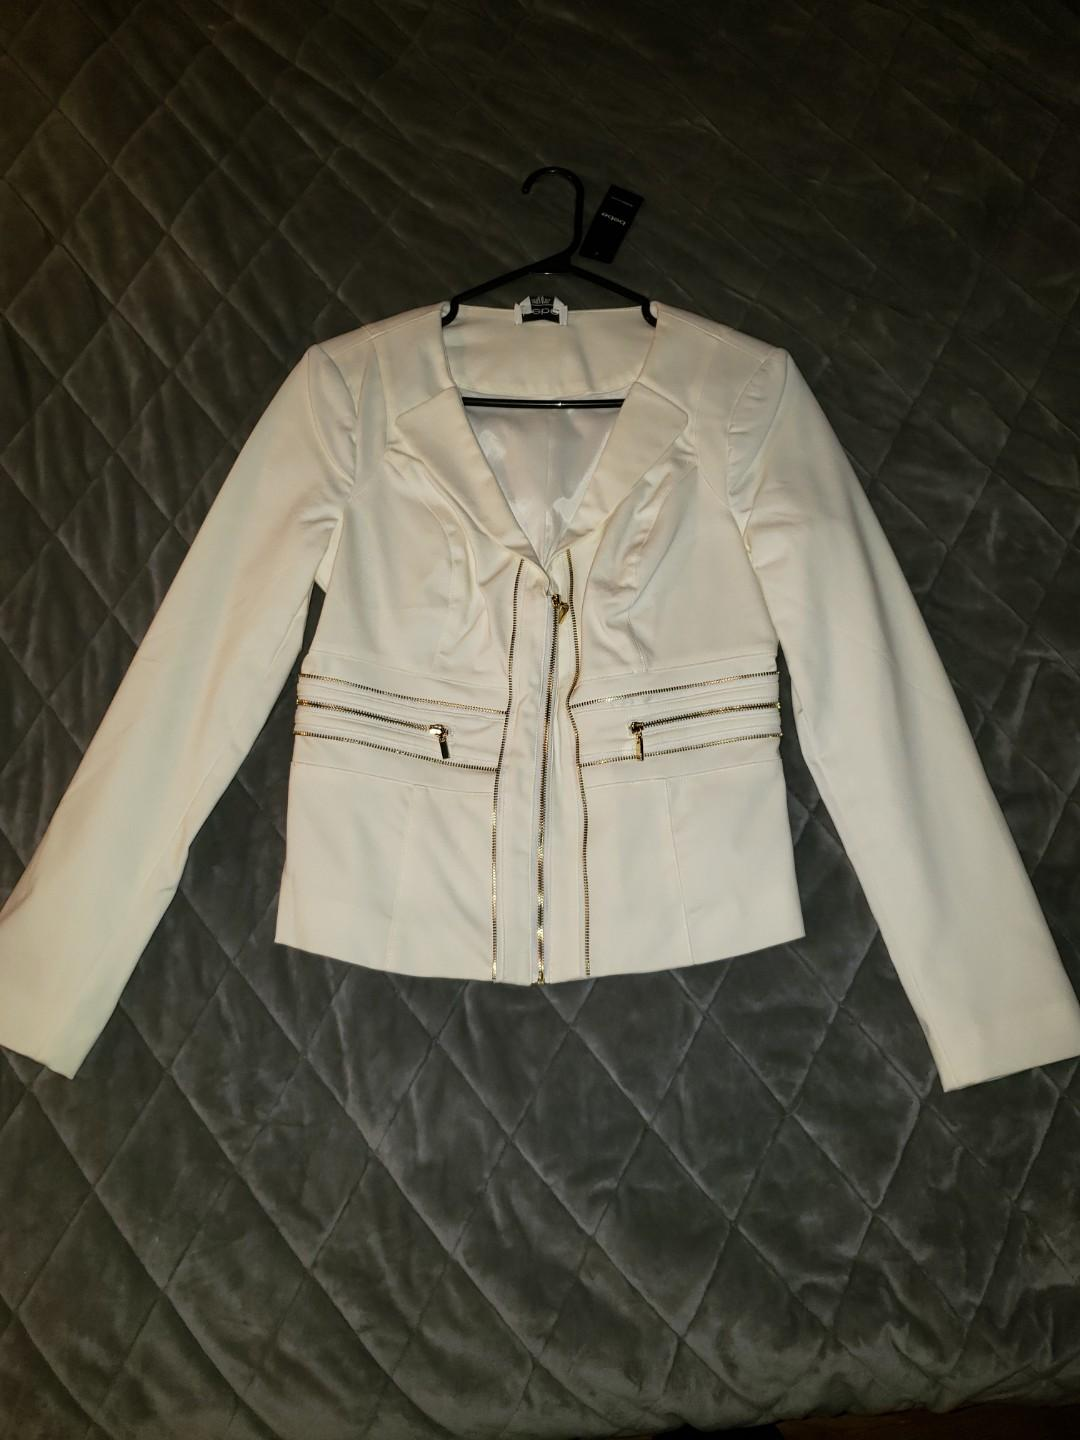 Bebe Blazer with Gold Zipper detail. Size Medium-new with tags.